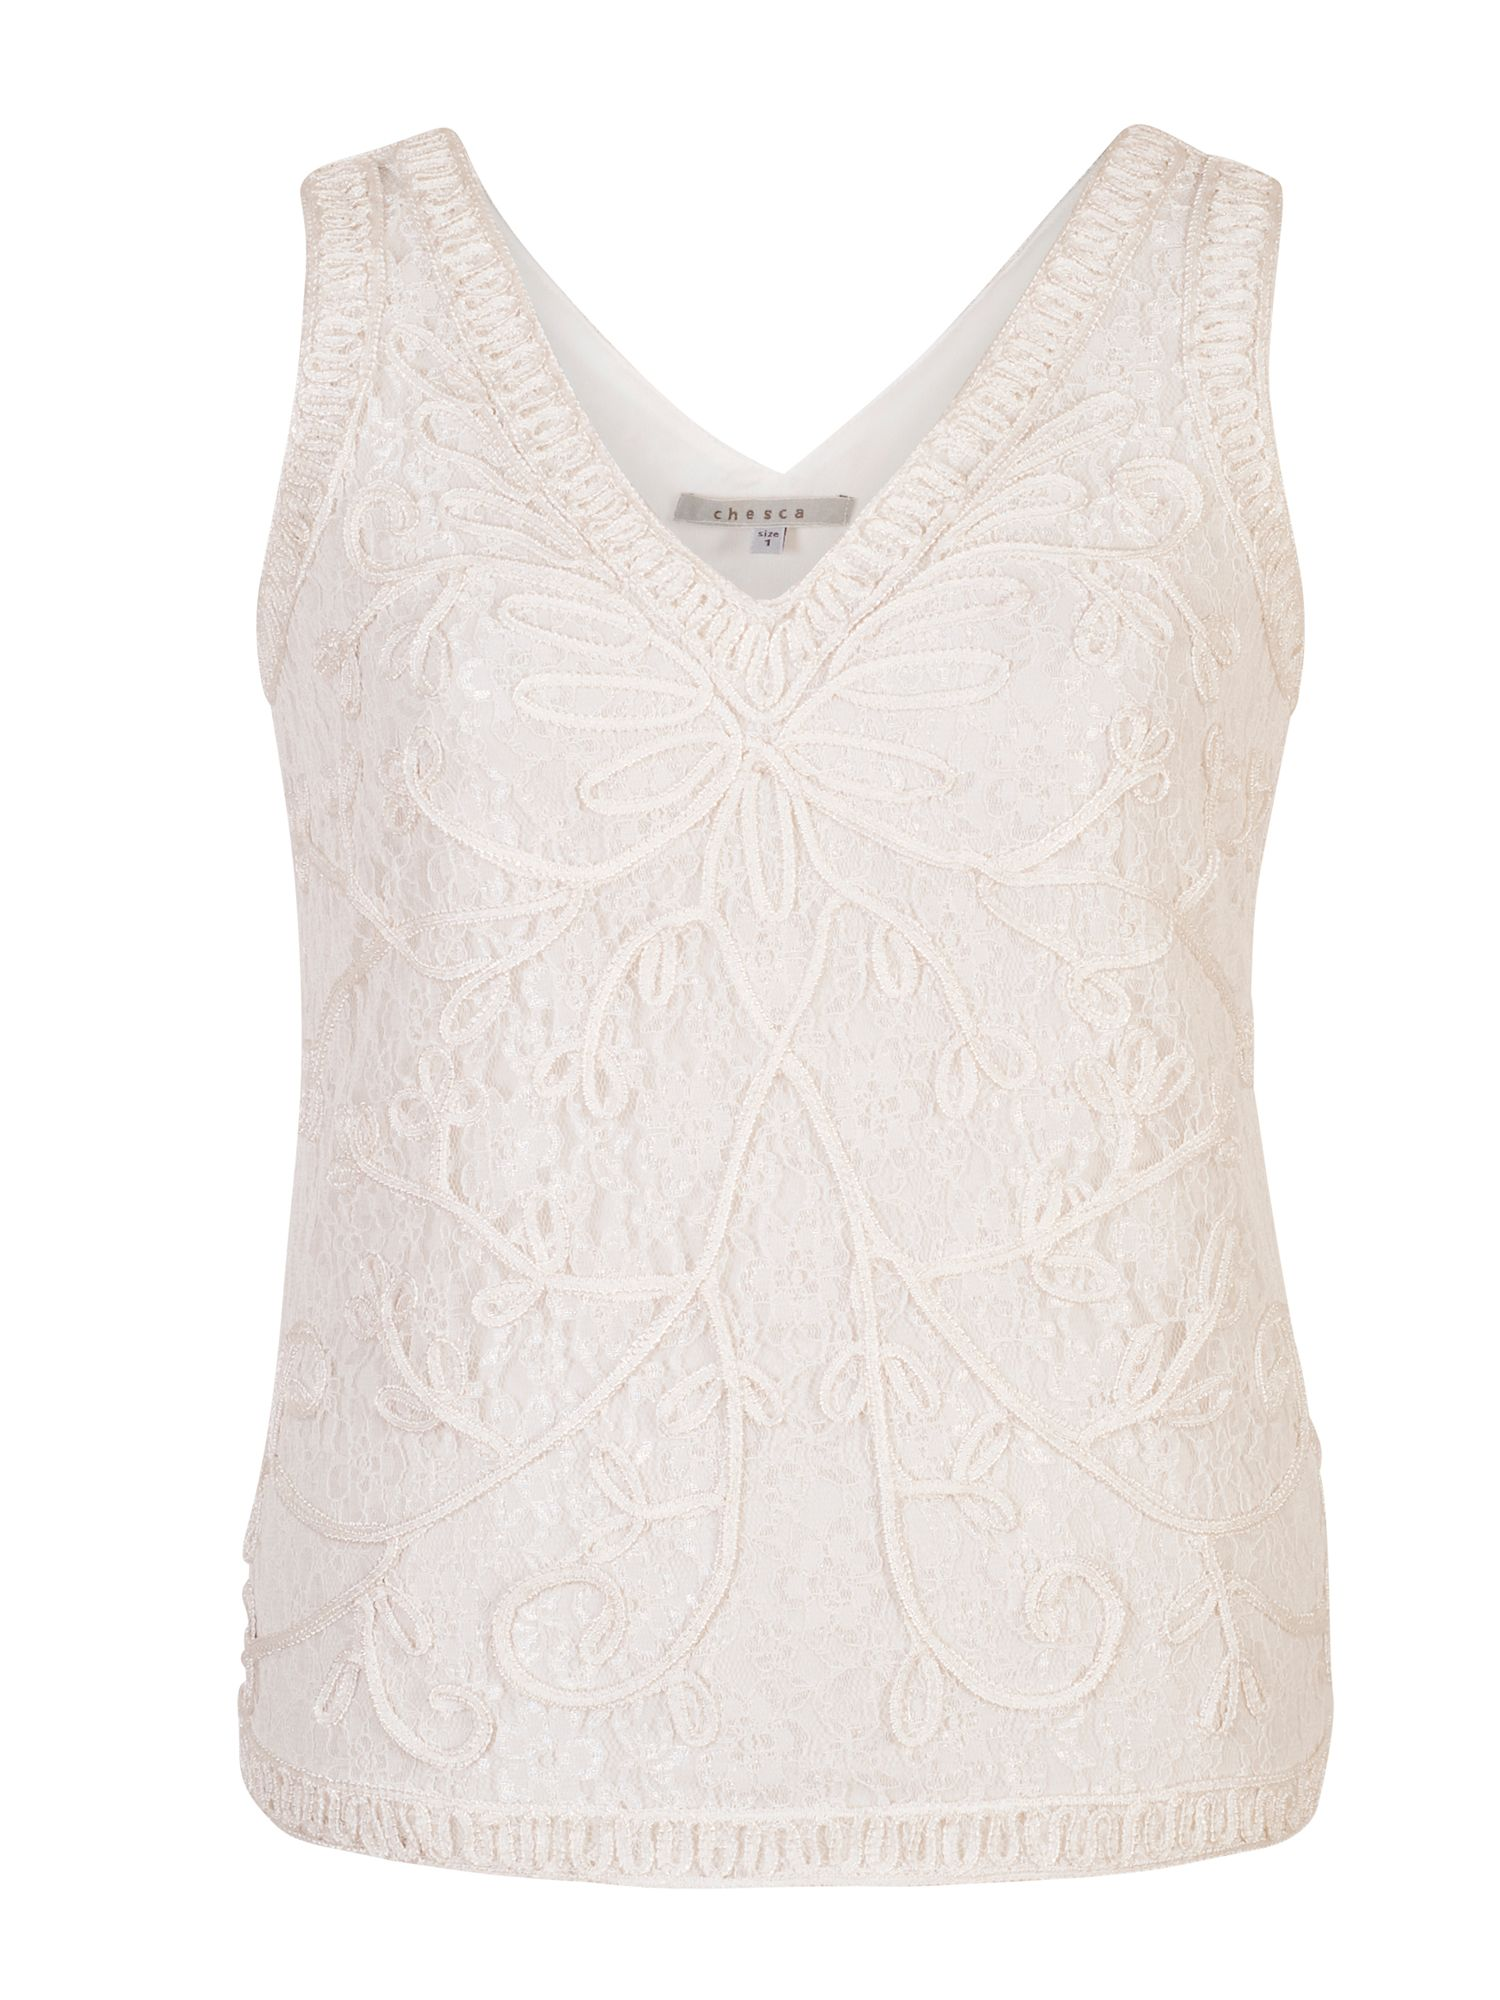 Chesca Cornelli Embroidered Lace Camisole, White